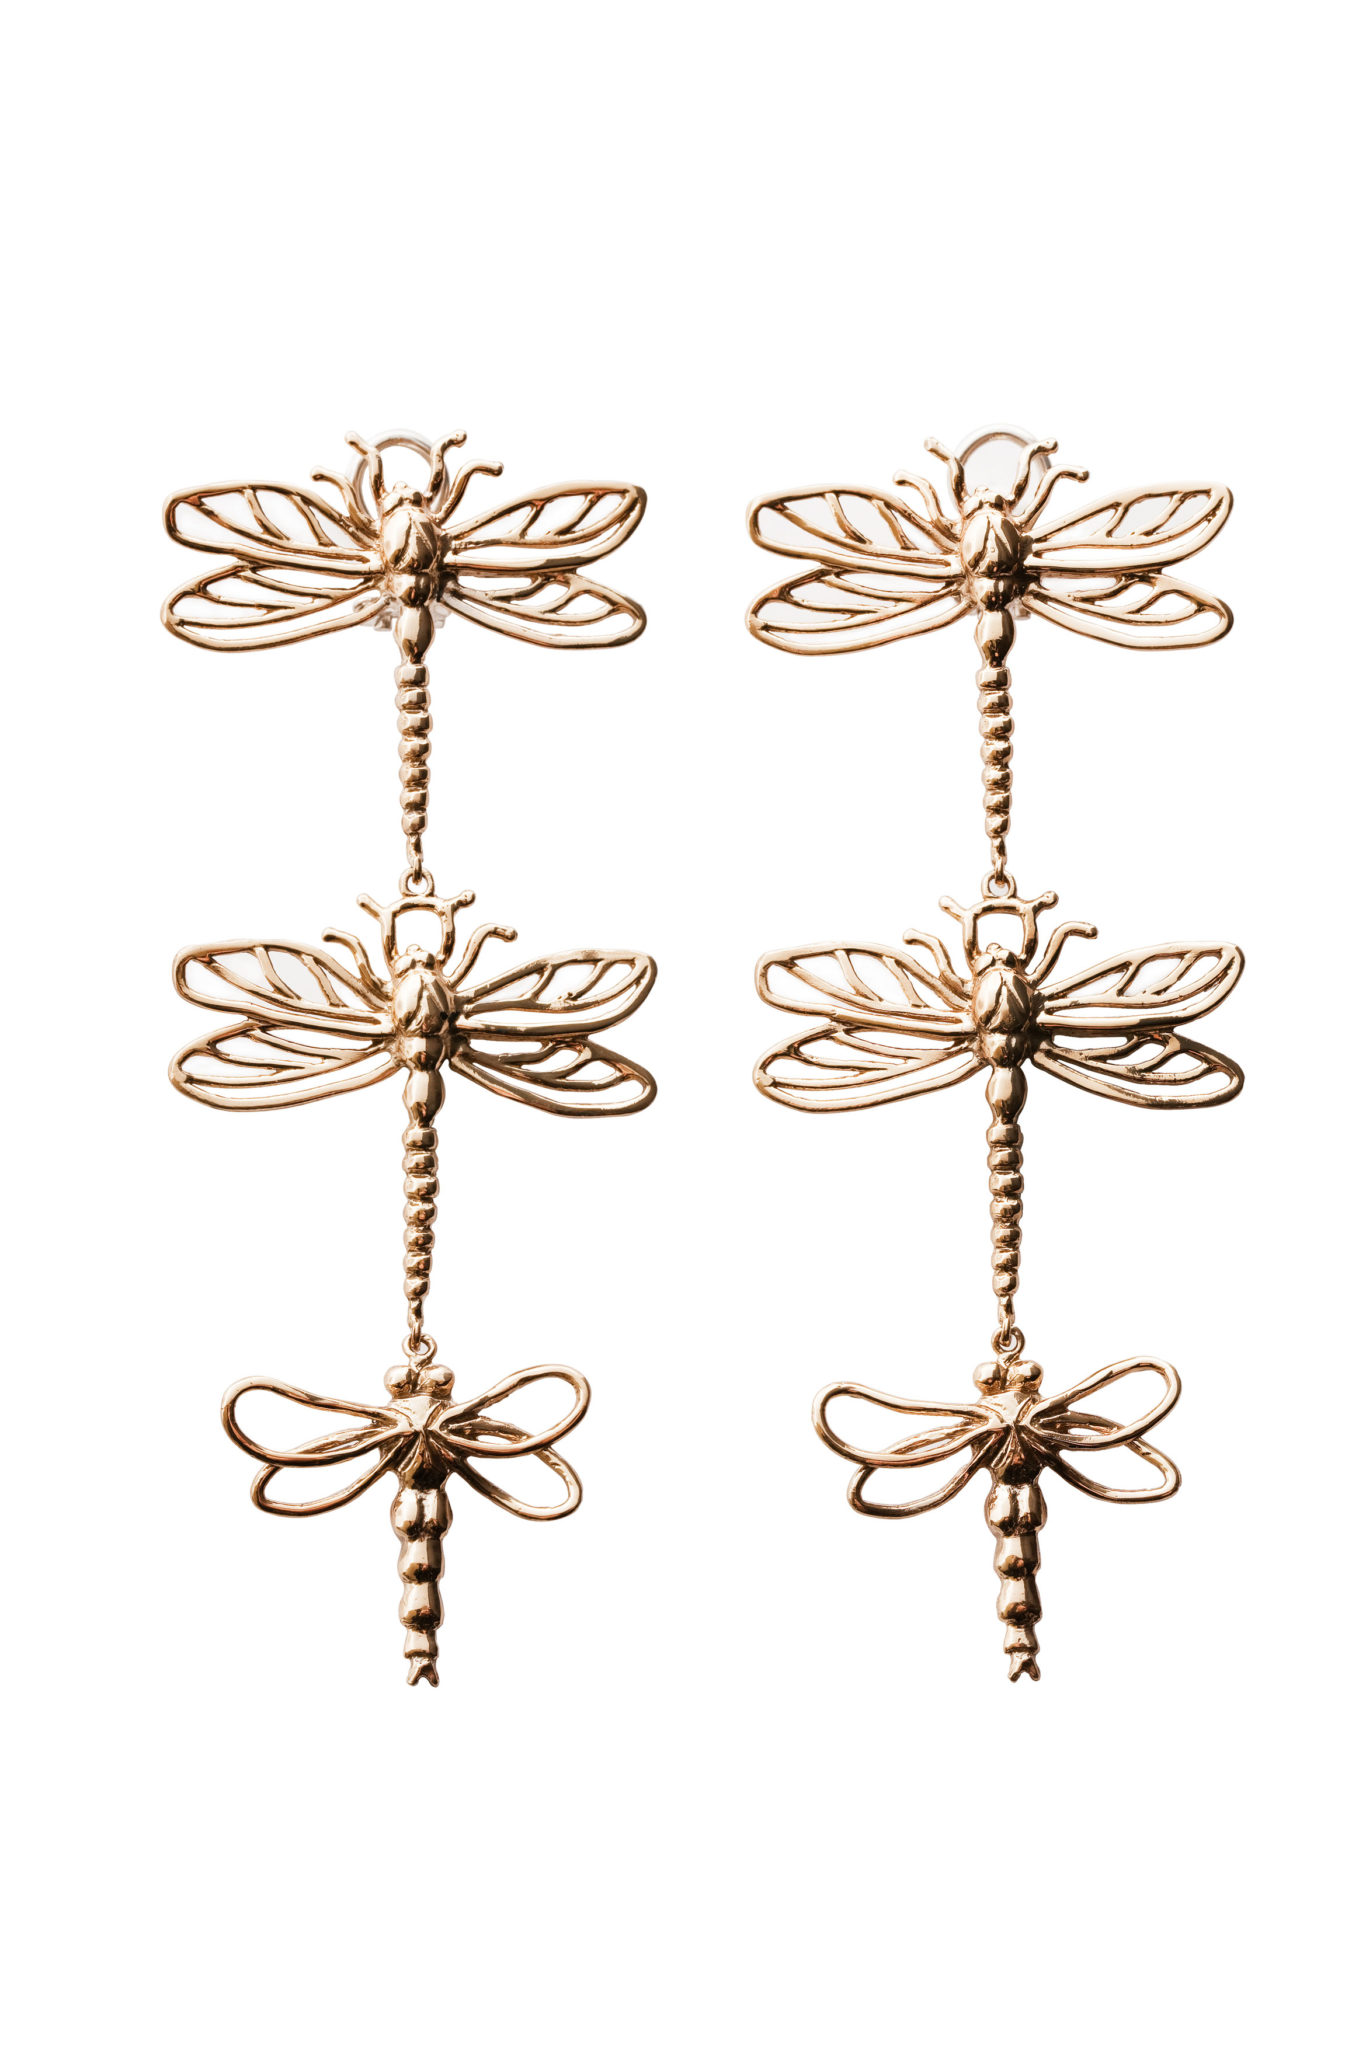 3 big dragonflies bronze earrings